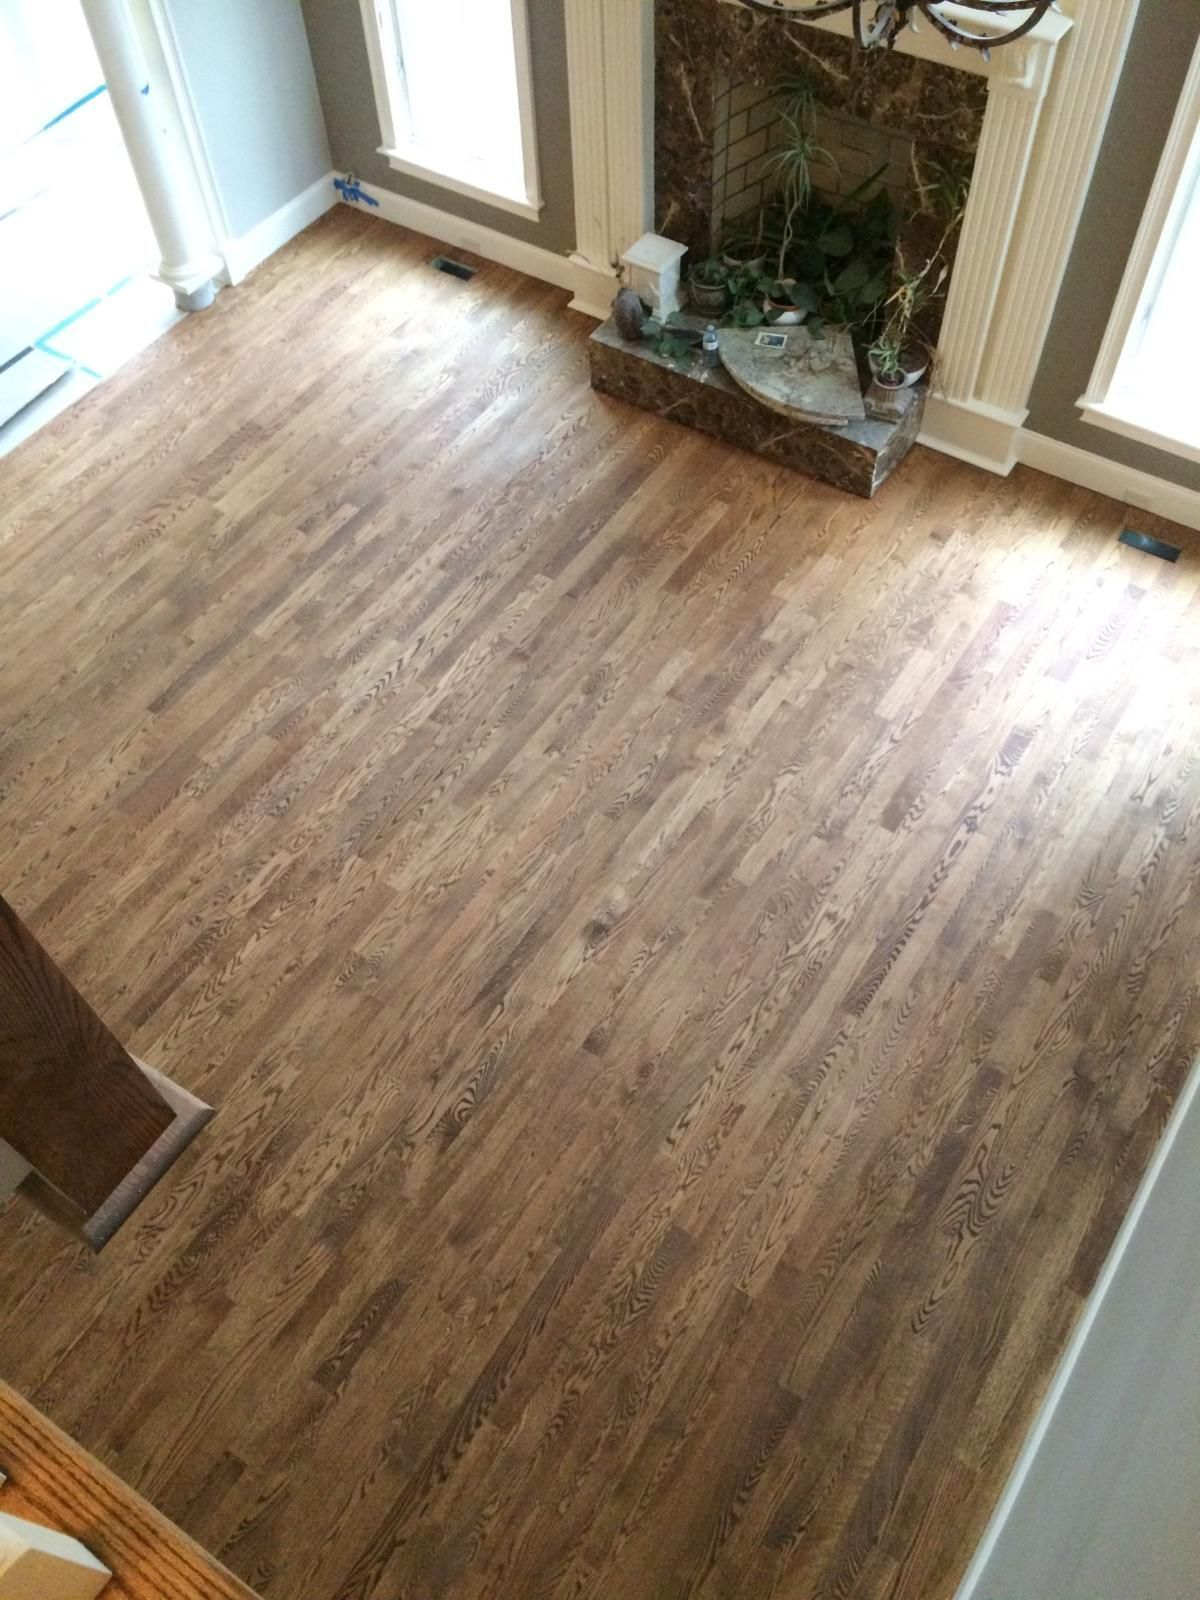 Red oak hardwood floors with custom stain colonial maple and